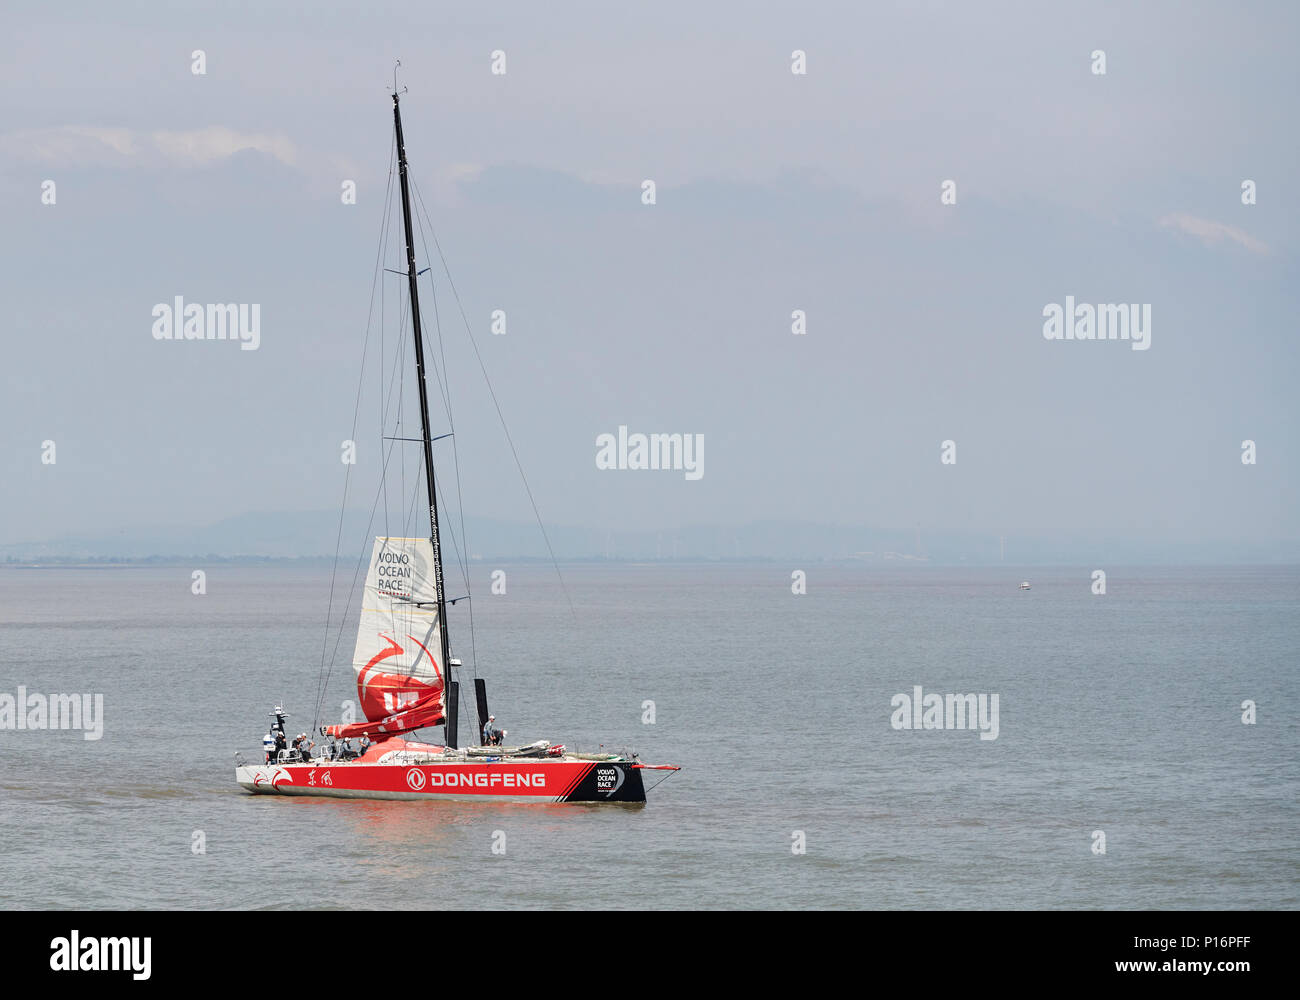 Cardiff Bay, Cardiff, Wales UK. 10th June 2018. Current race leader Dongfeng Race Team,  leaves port to prepare for the start of The Volvo Ocean Race  Leg 10 Cardiff to Gothenburg. Credit: Phillip Thomas/Alamy Live News Stock Photo